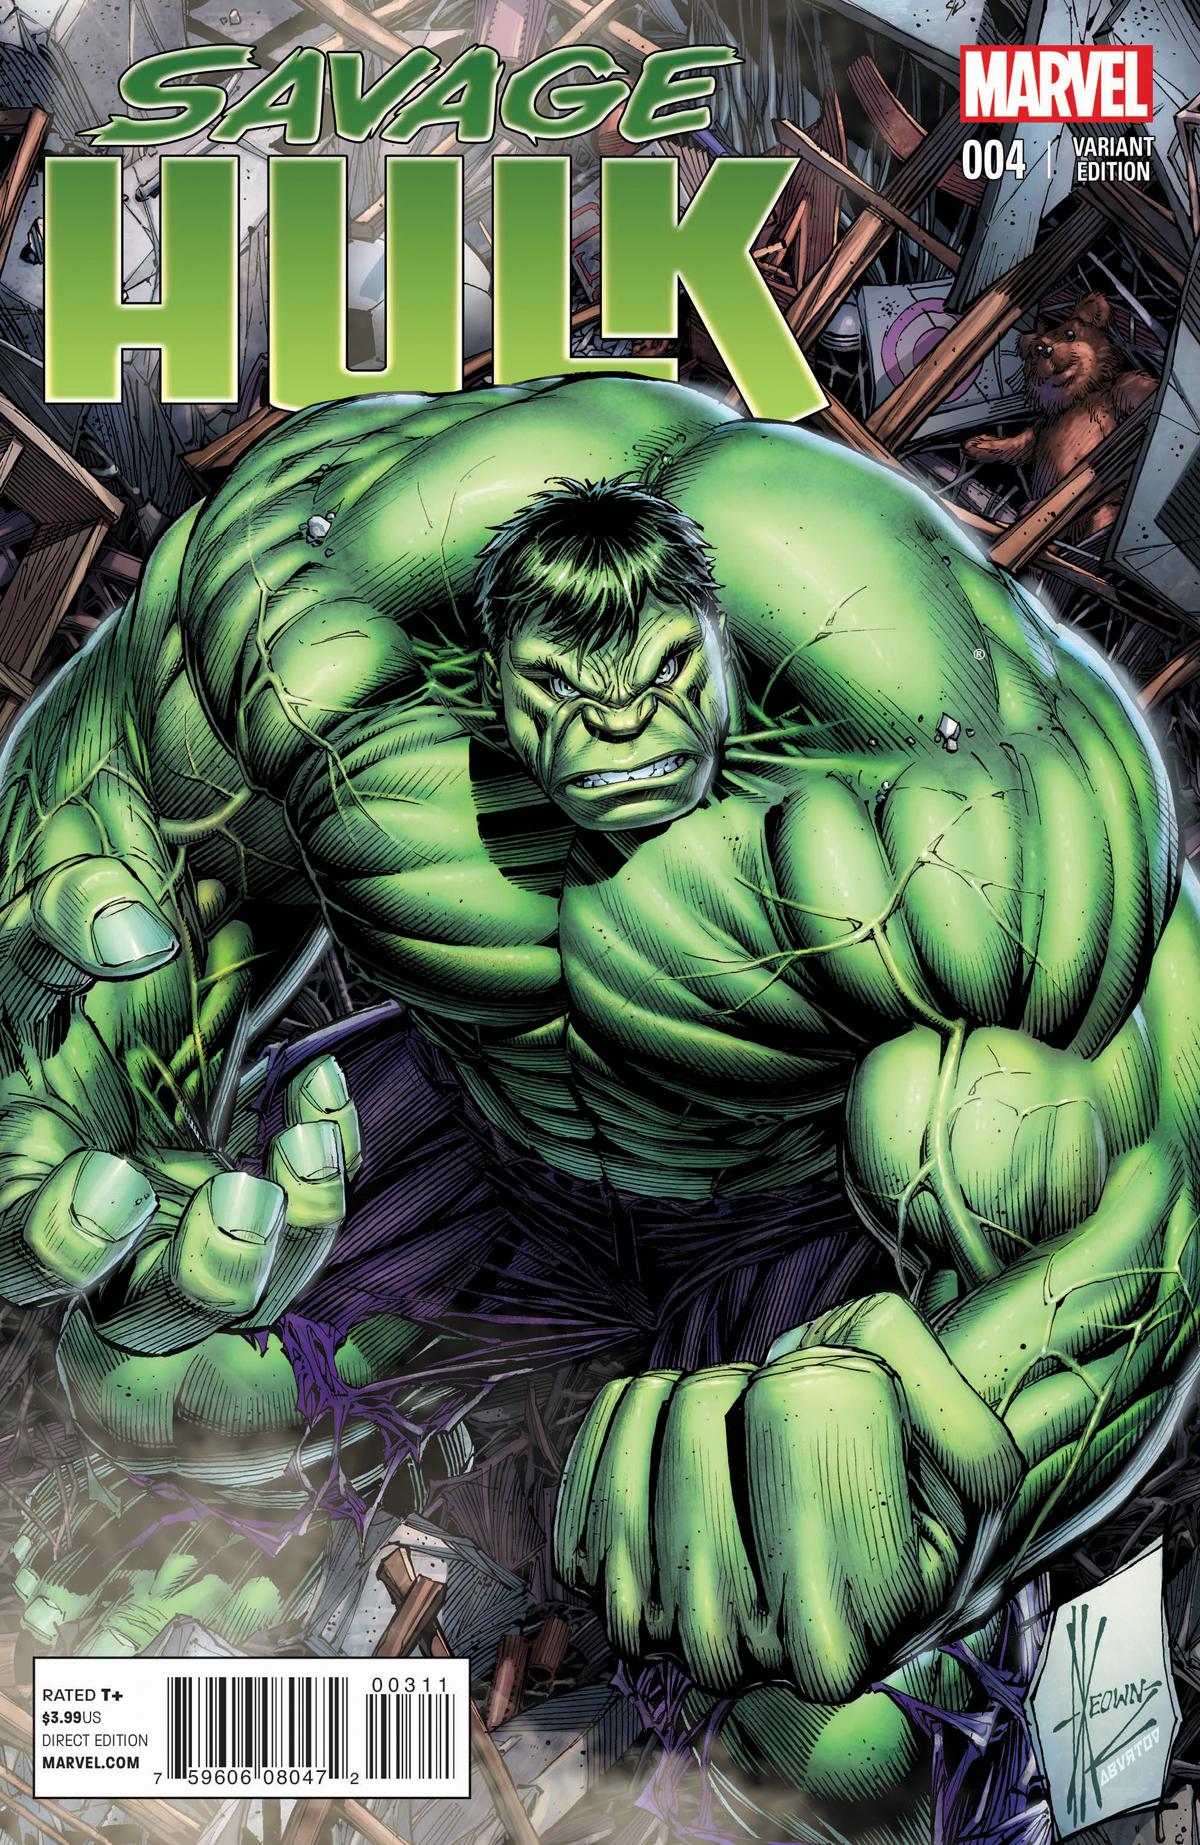 SAVAGE HULK #4 KEOWN VAR